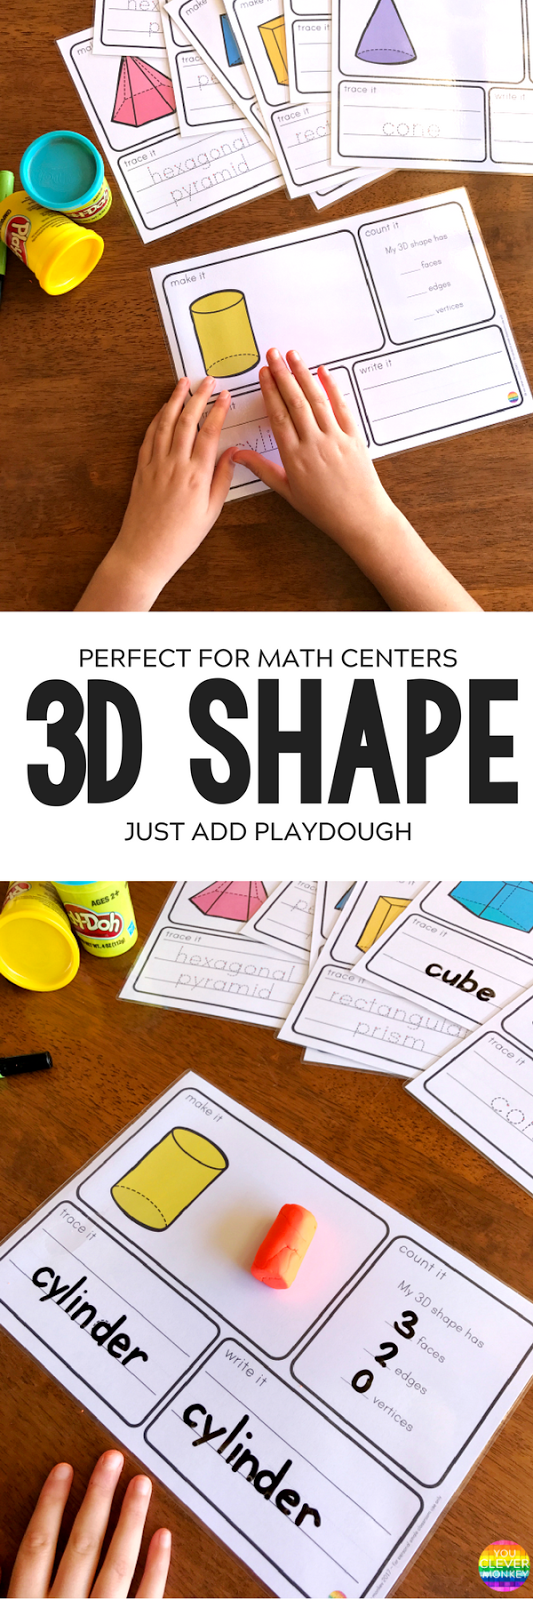 3D Object Printable Playdough Mats | you clever monkey